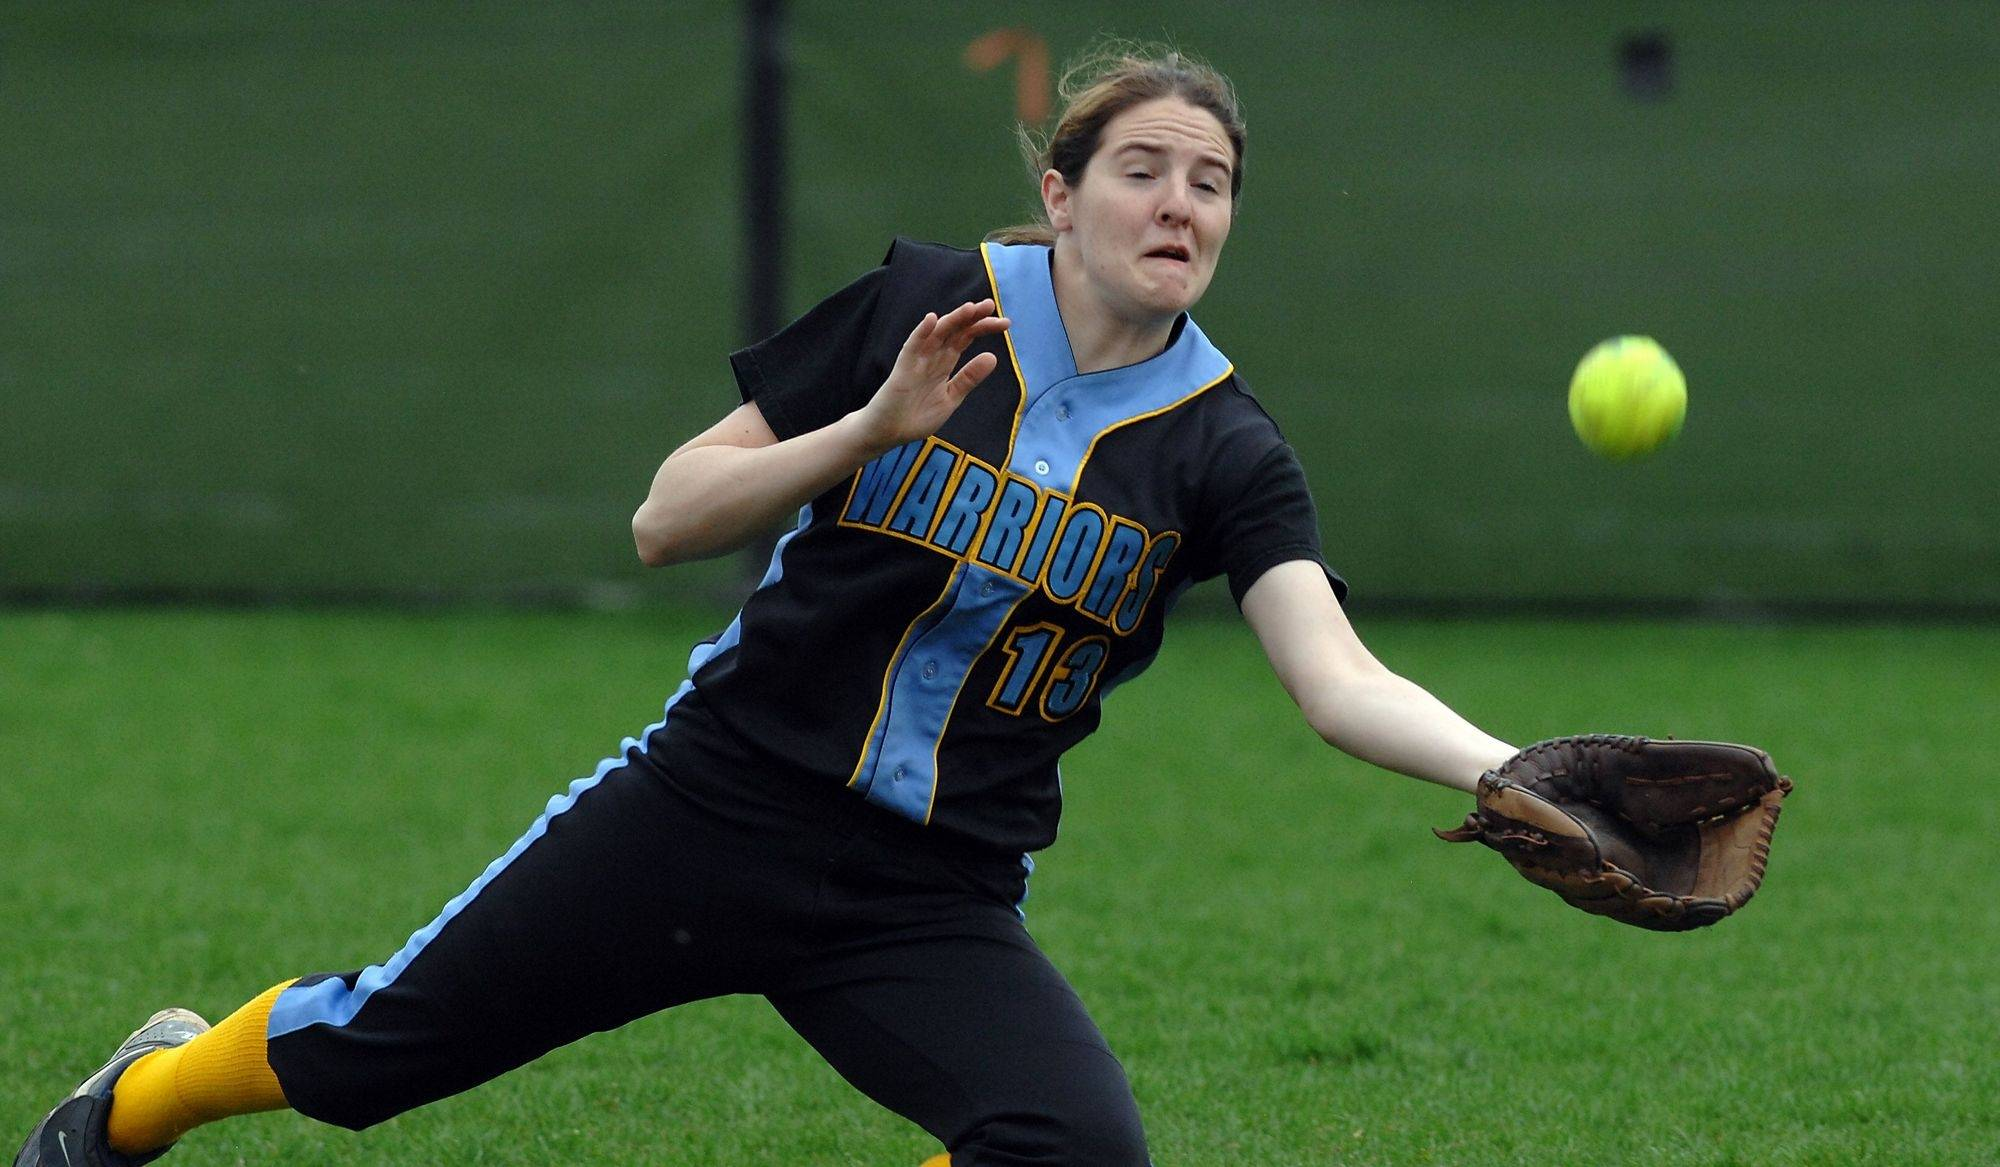 Maine West's Vanessa Bagneschi robs Rolling Meadows player MaryClare Loughery of a hit during the forth inning of on Monday's game at Rolling Meadows High School.